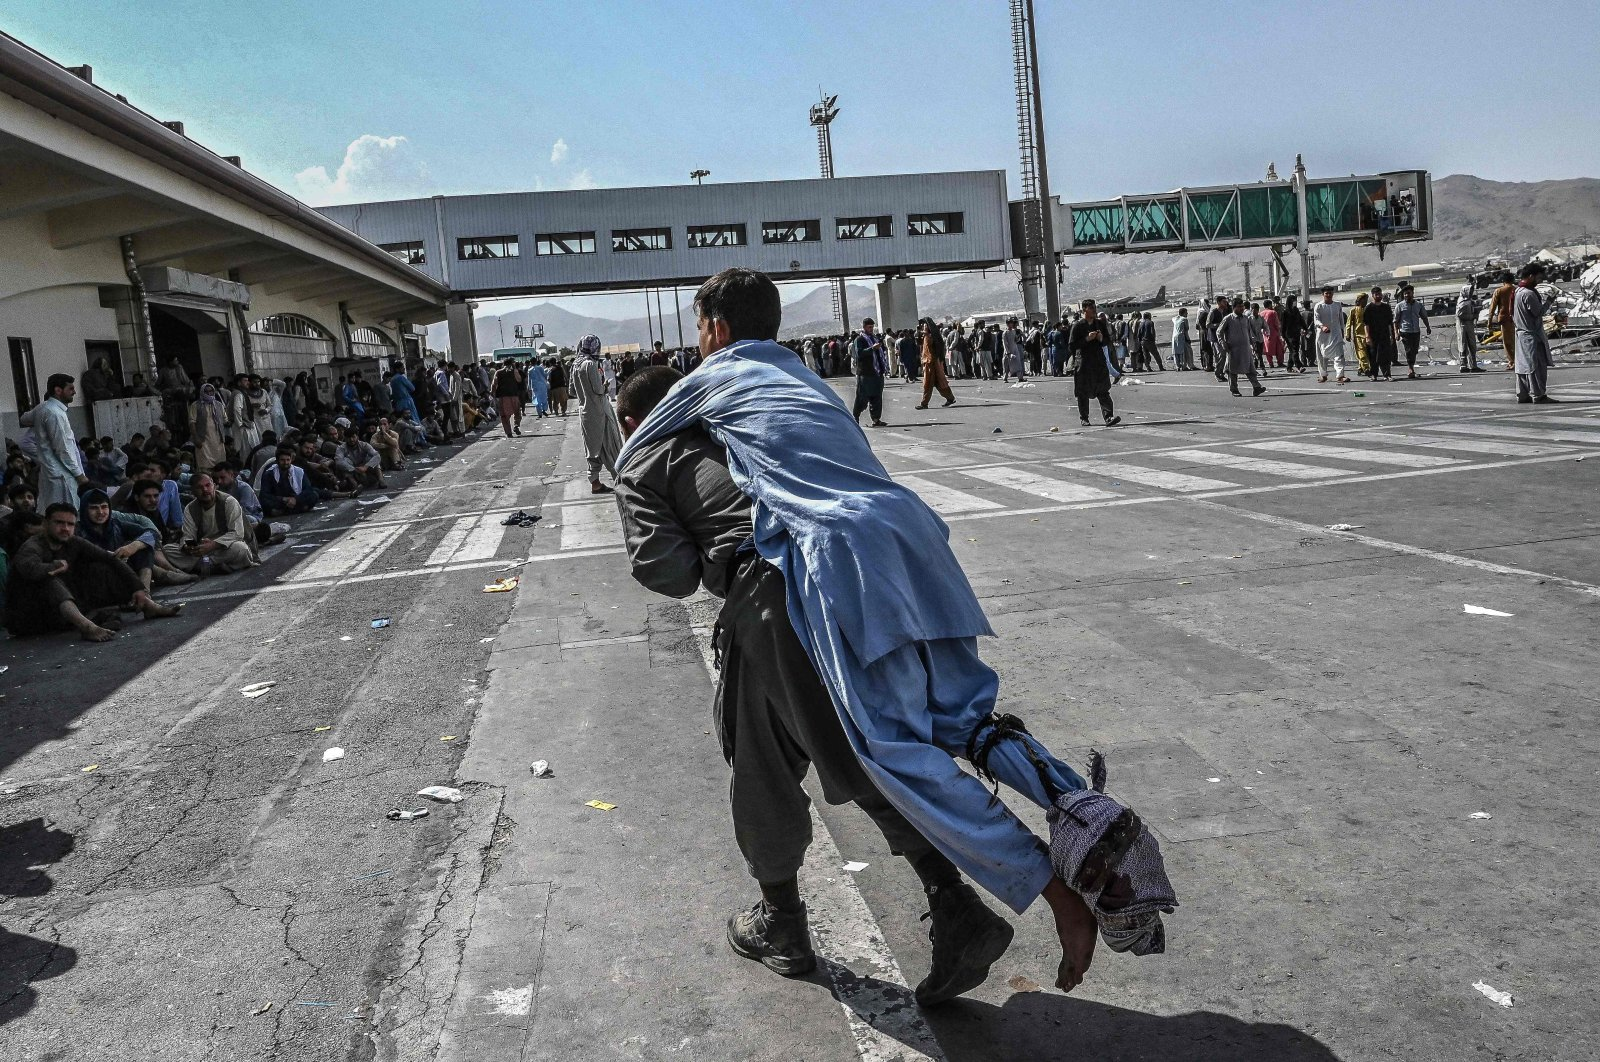 A volunteer carries an injured man as other people can be seen waiting at the Kabul Hamid Karzai International Airport, Kabul, Afghanistan, Aug. 16, 2021. (AFP Photo)